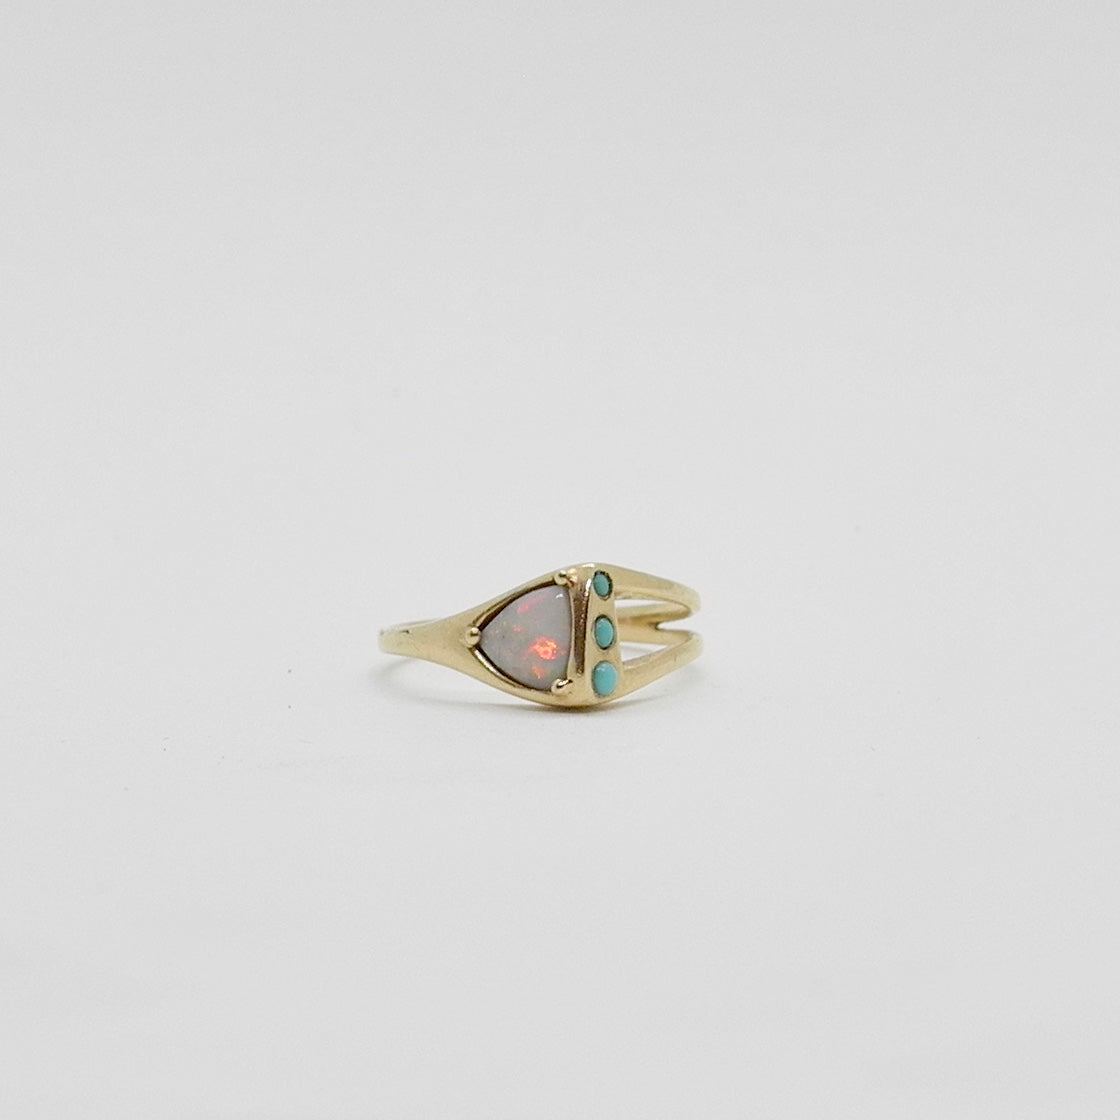 Pyramid Ring, 14k Gold, Opal w/ 3 Turquoise stones